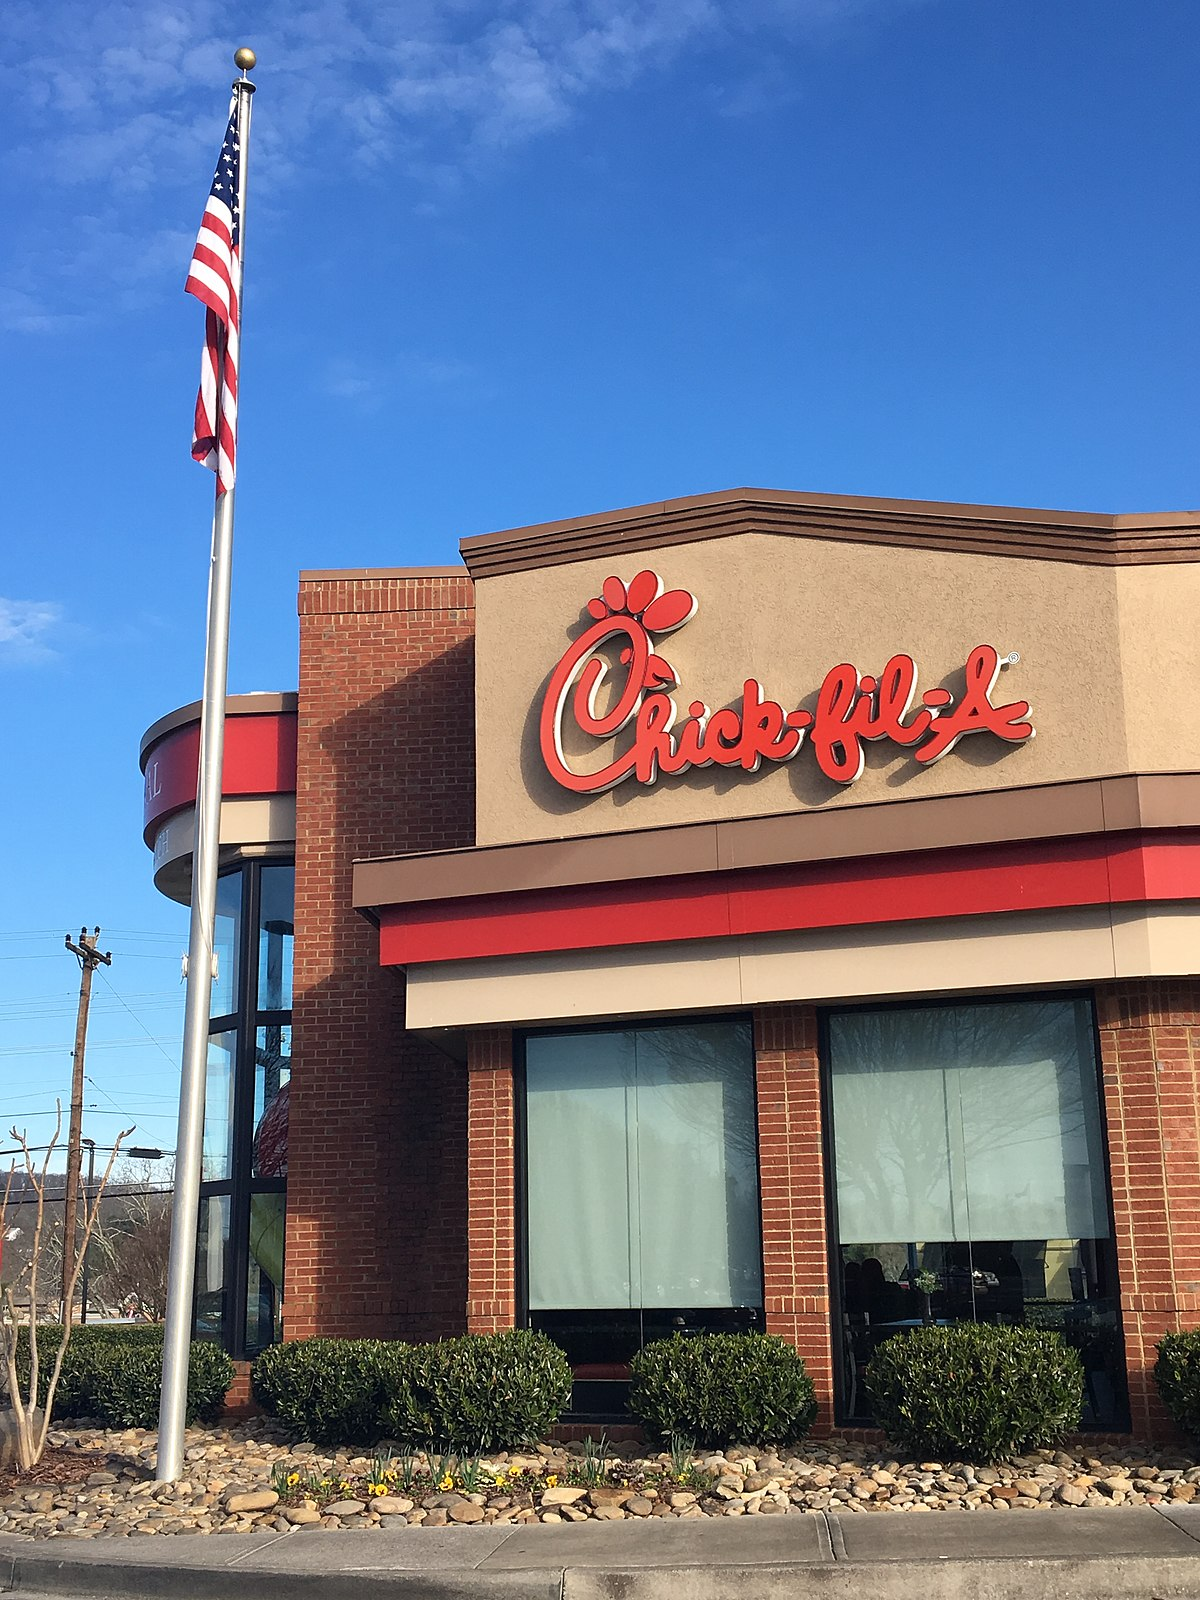 Chick-fil-A - Wikipedia